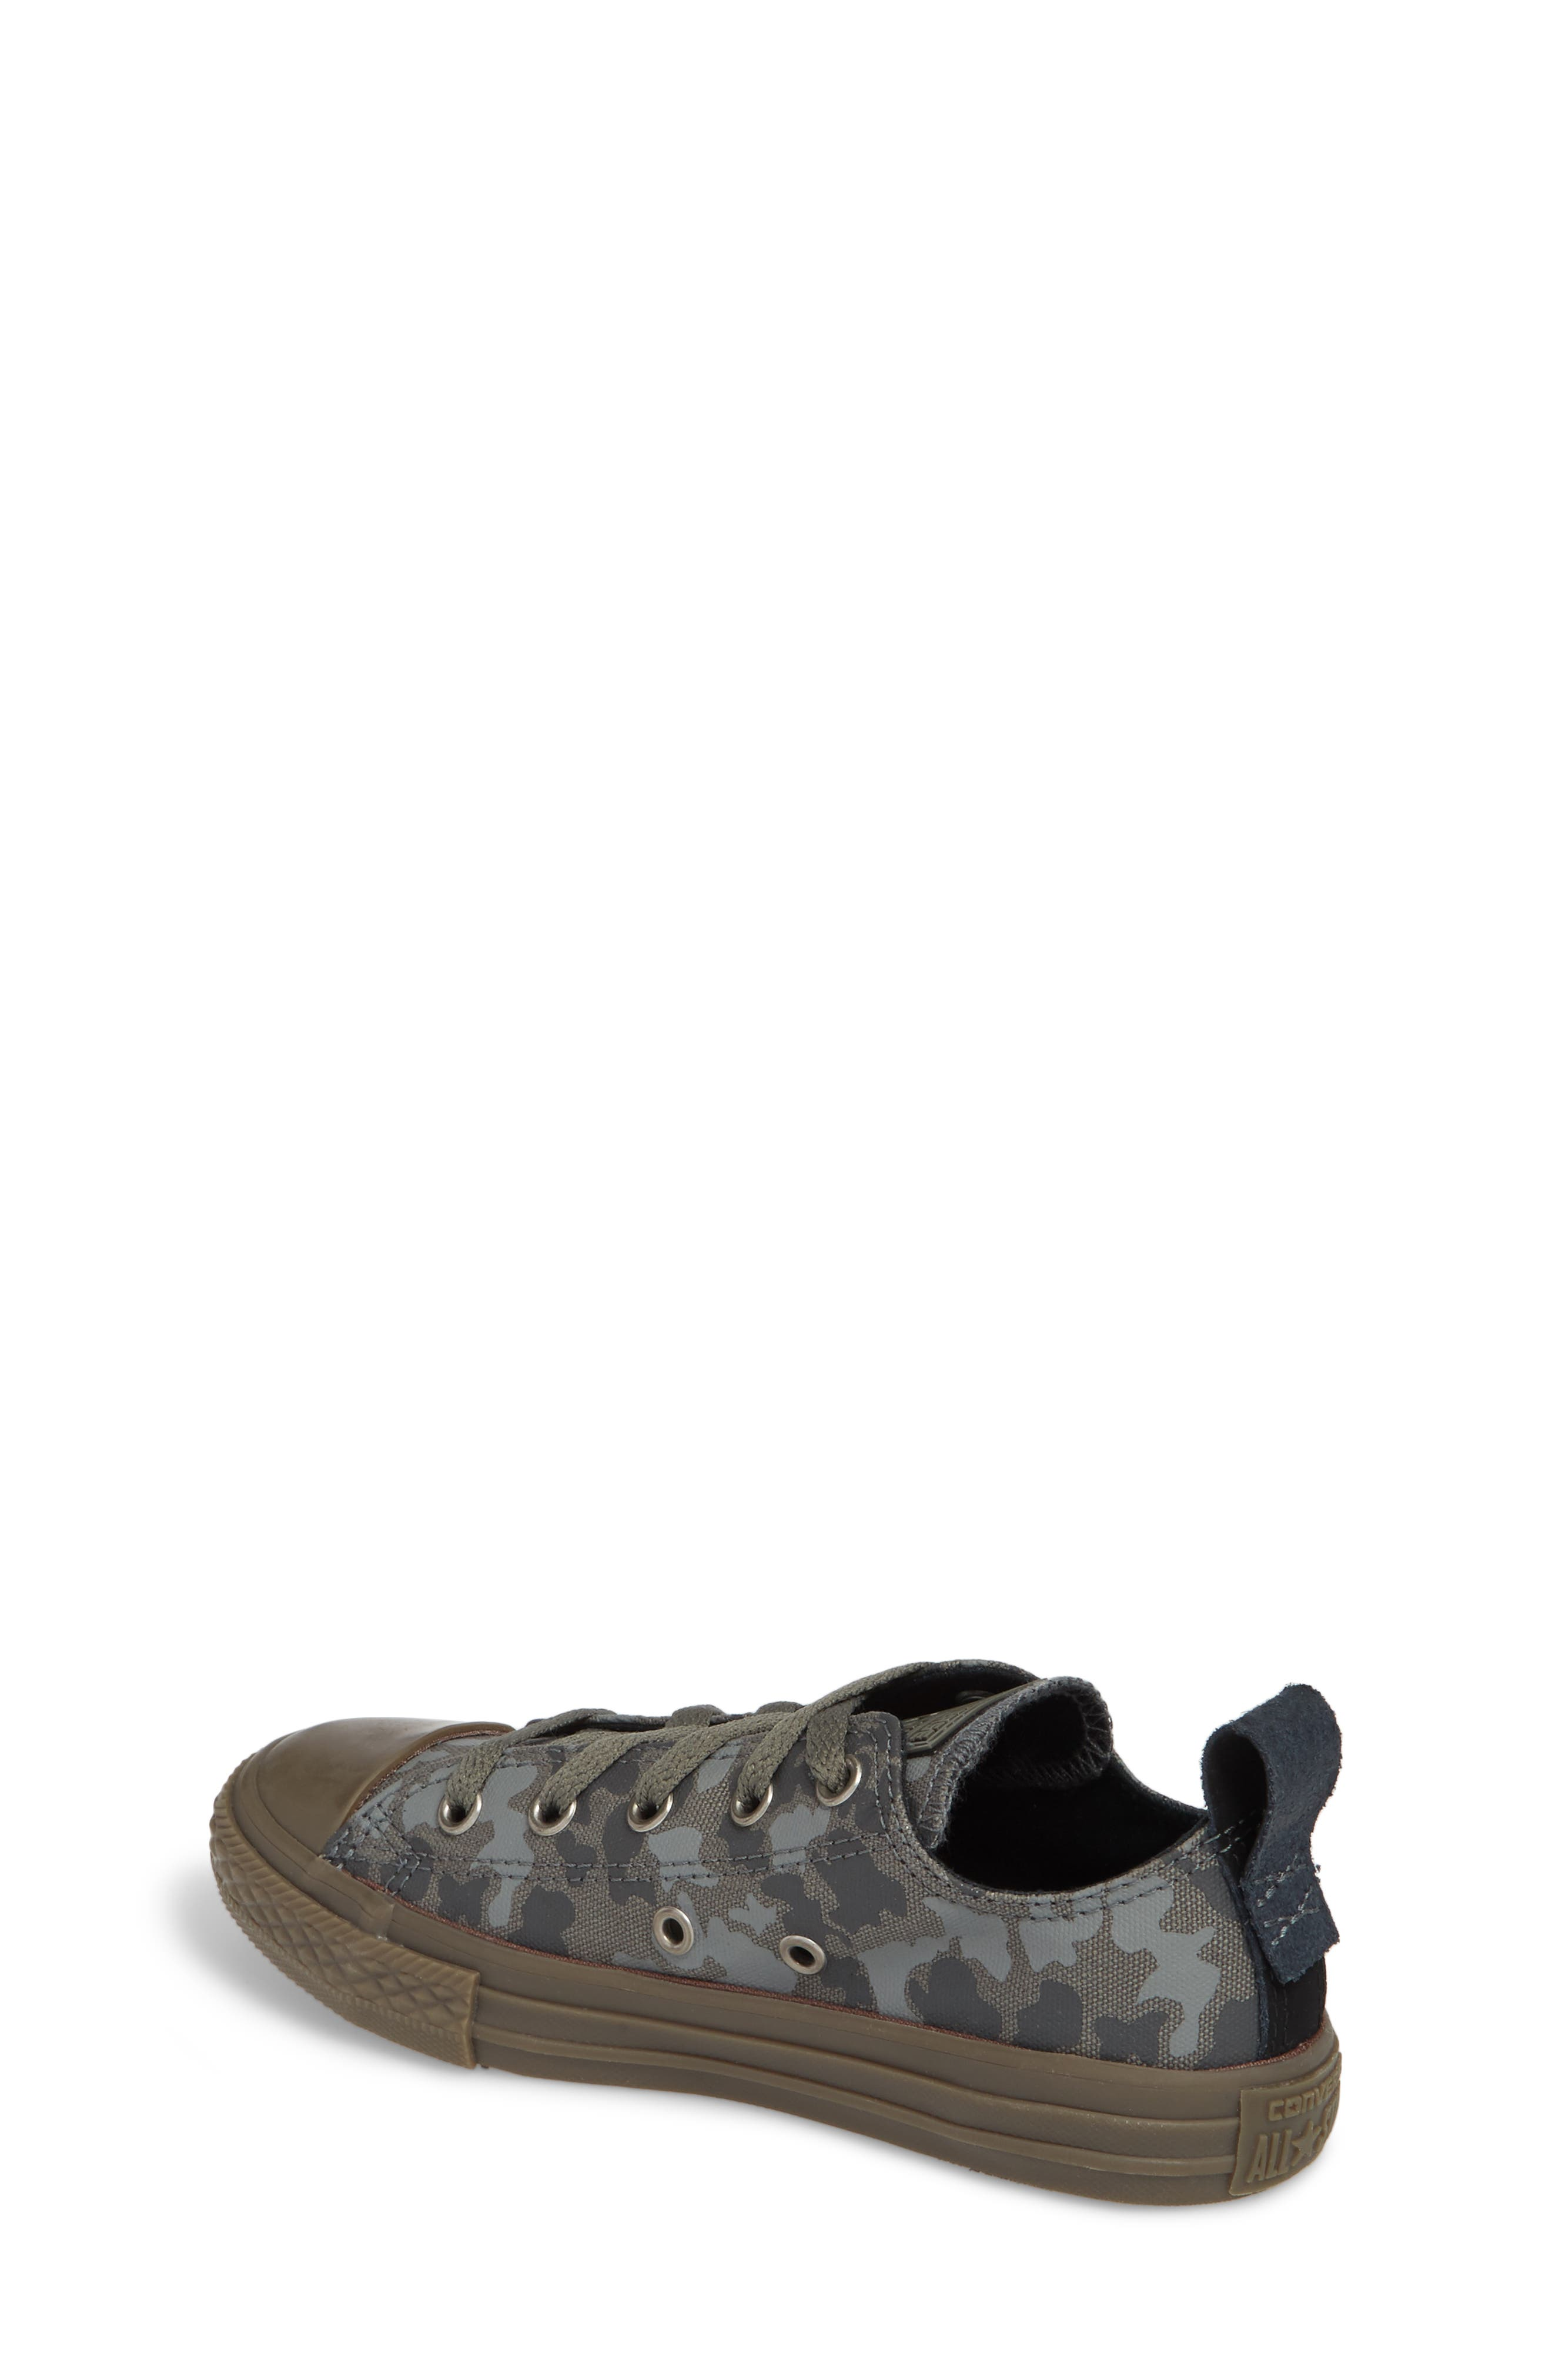 Chuck Taylor<sup>®</sup> All Star<sup>®</sup> Camo Ox Low Top Sneaker,                             Alternate thumbnail 2, color,                             022